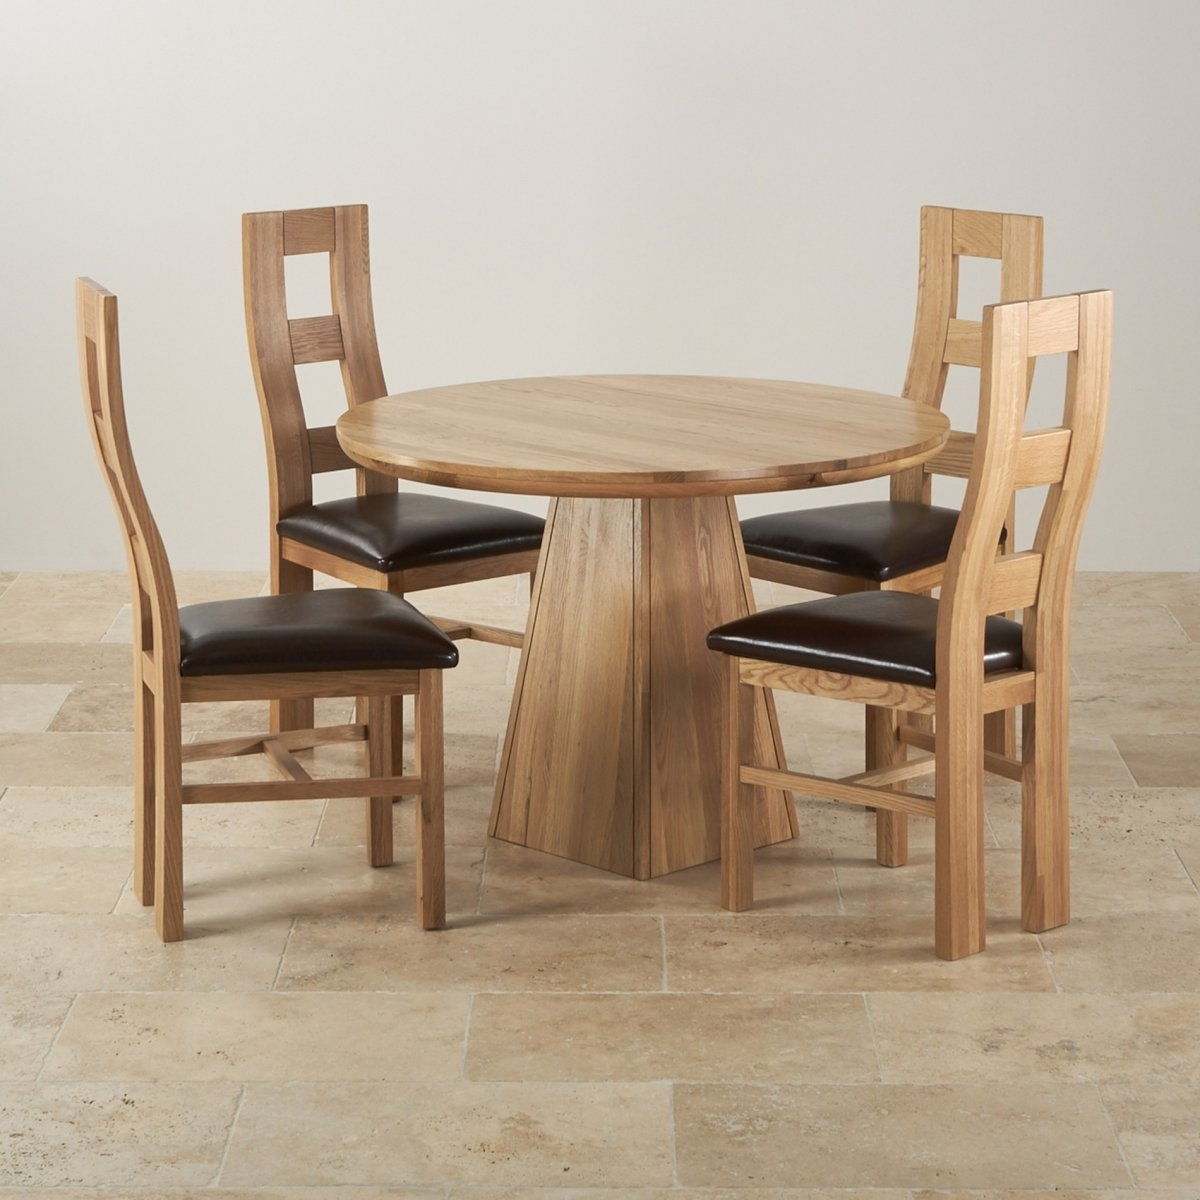 Provence Solid Oak Dining Set 3Ft 7Quot; Table With 4 Chairs, Dining In Newest Round Oak Dining Tables And 4 Chairs (Gallery 1 of 25)